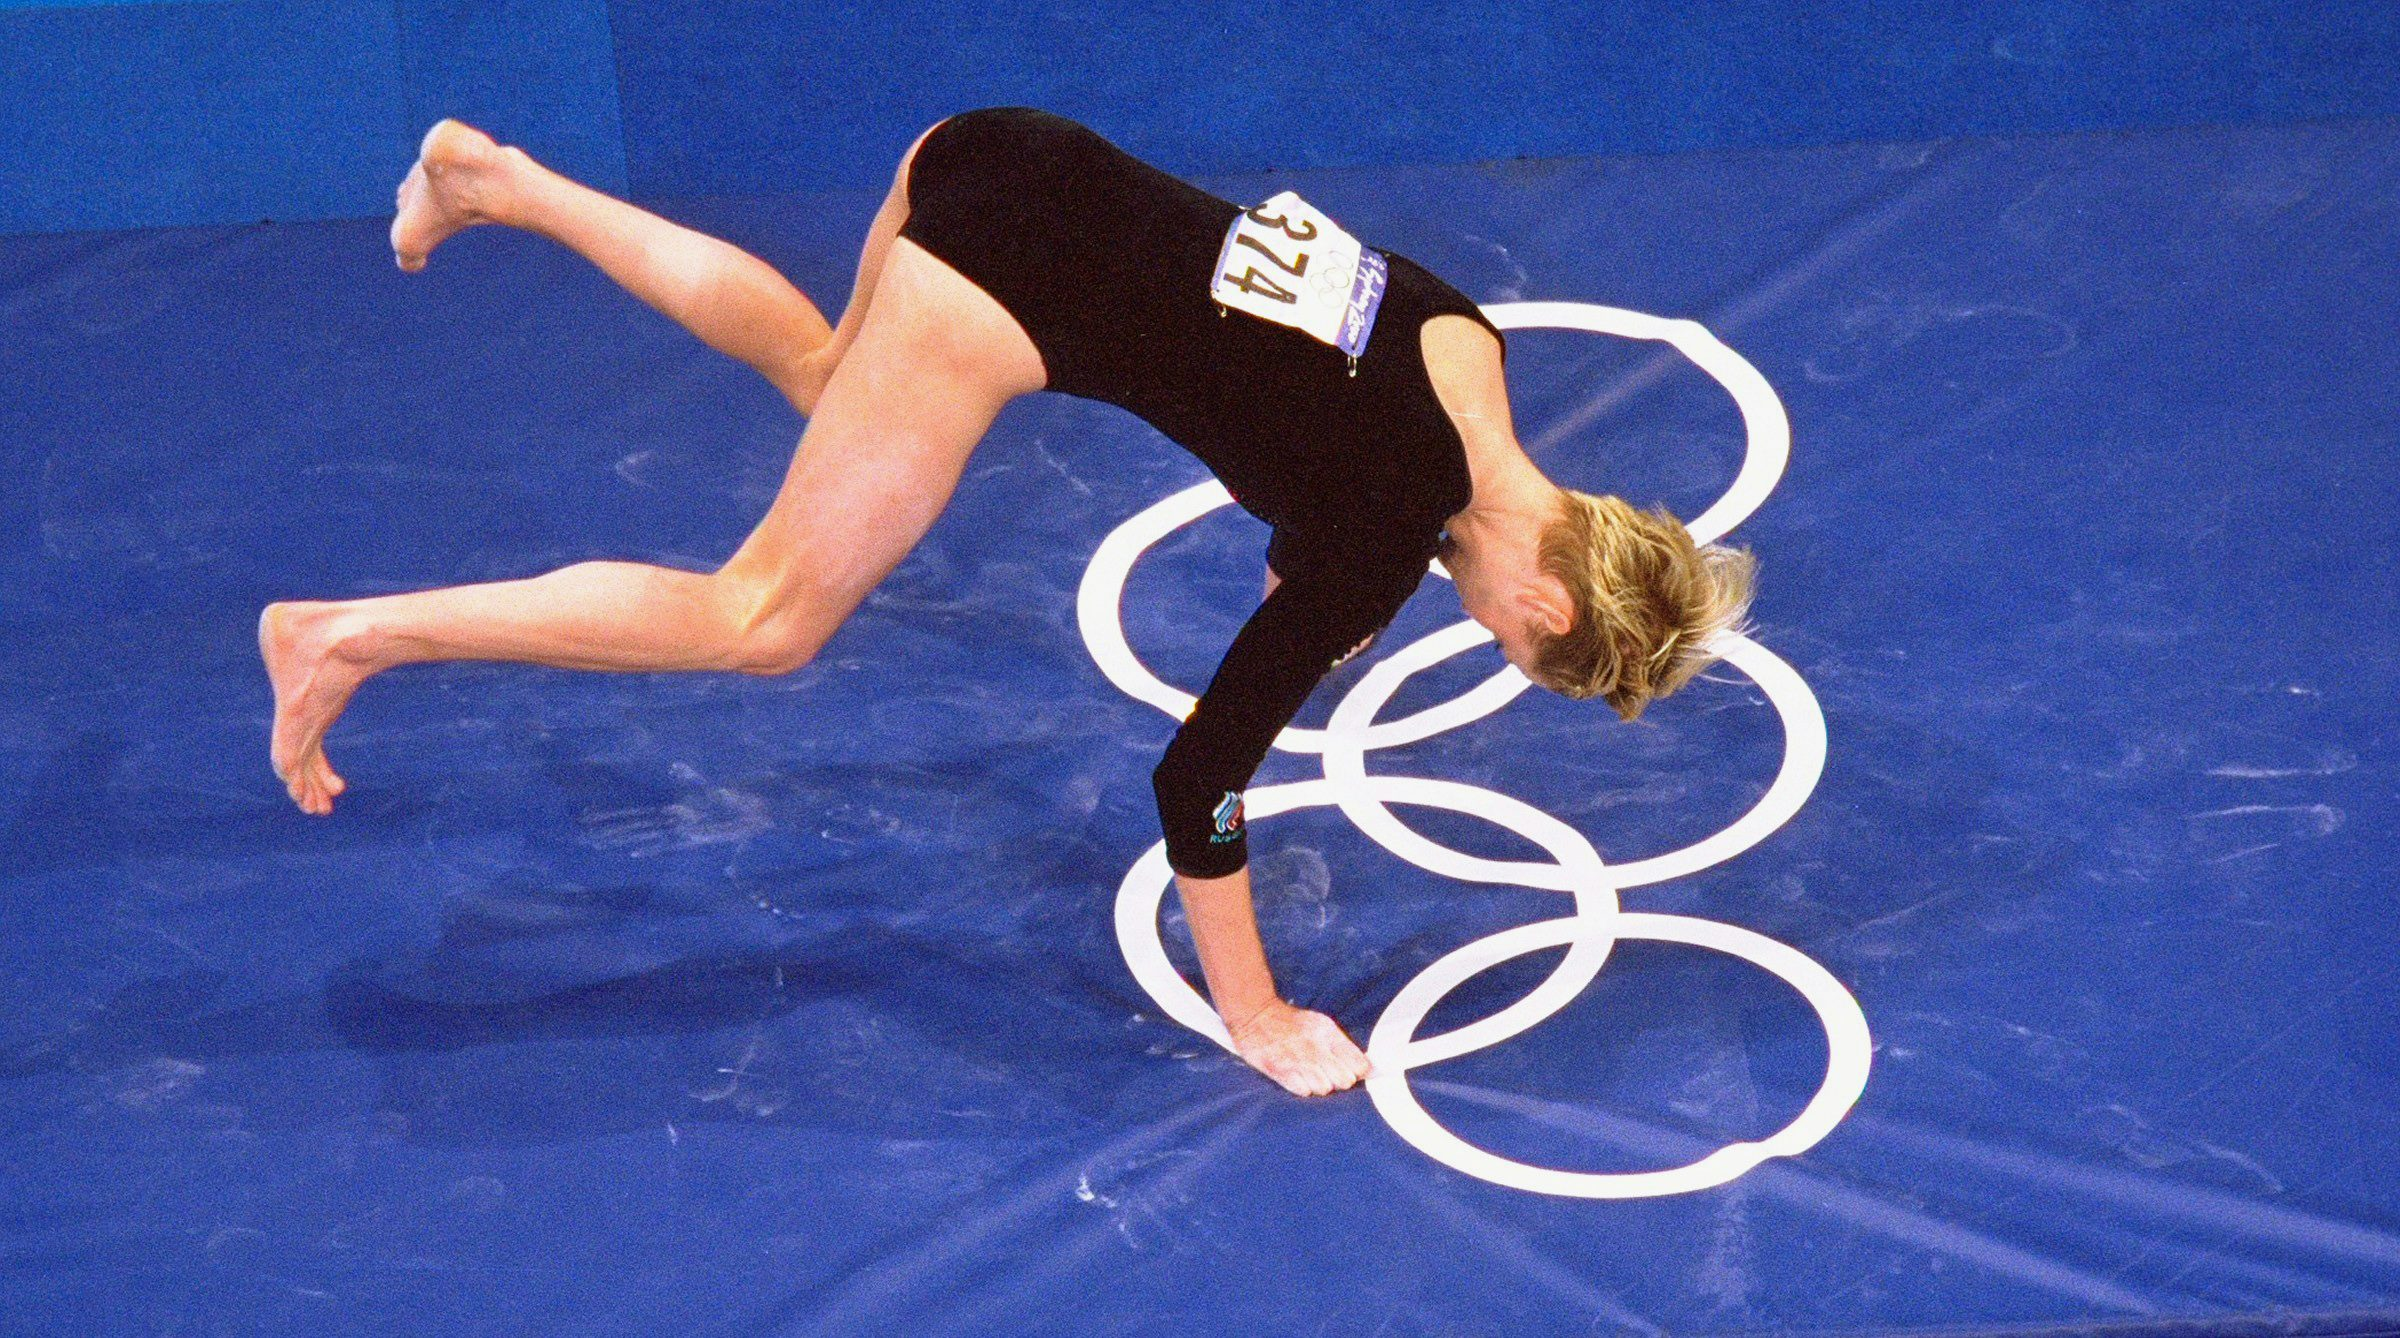 Svetlana Khorkina falls on the vault at the 2000 Olympics in Sydney. It was not her fault.